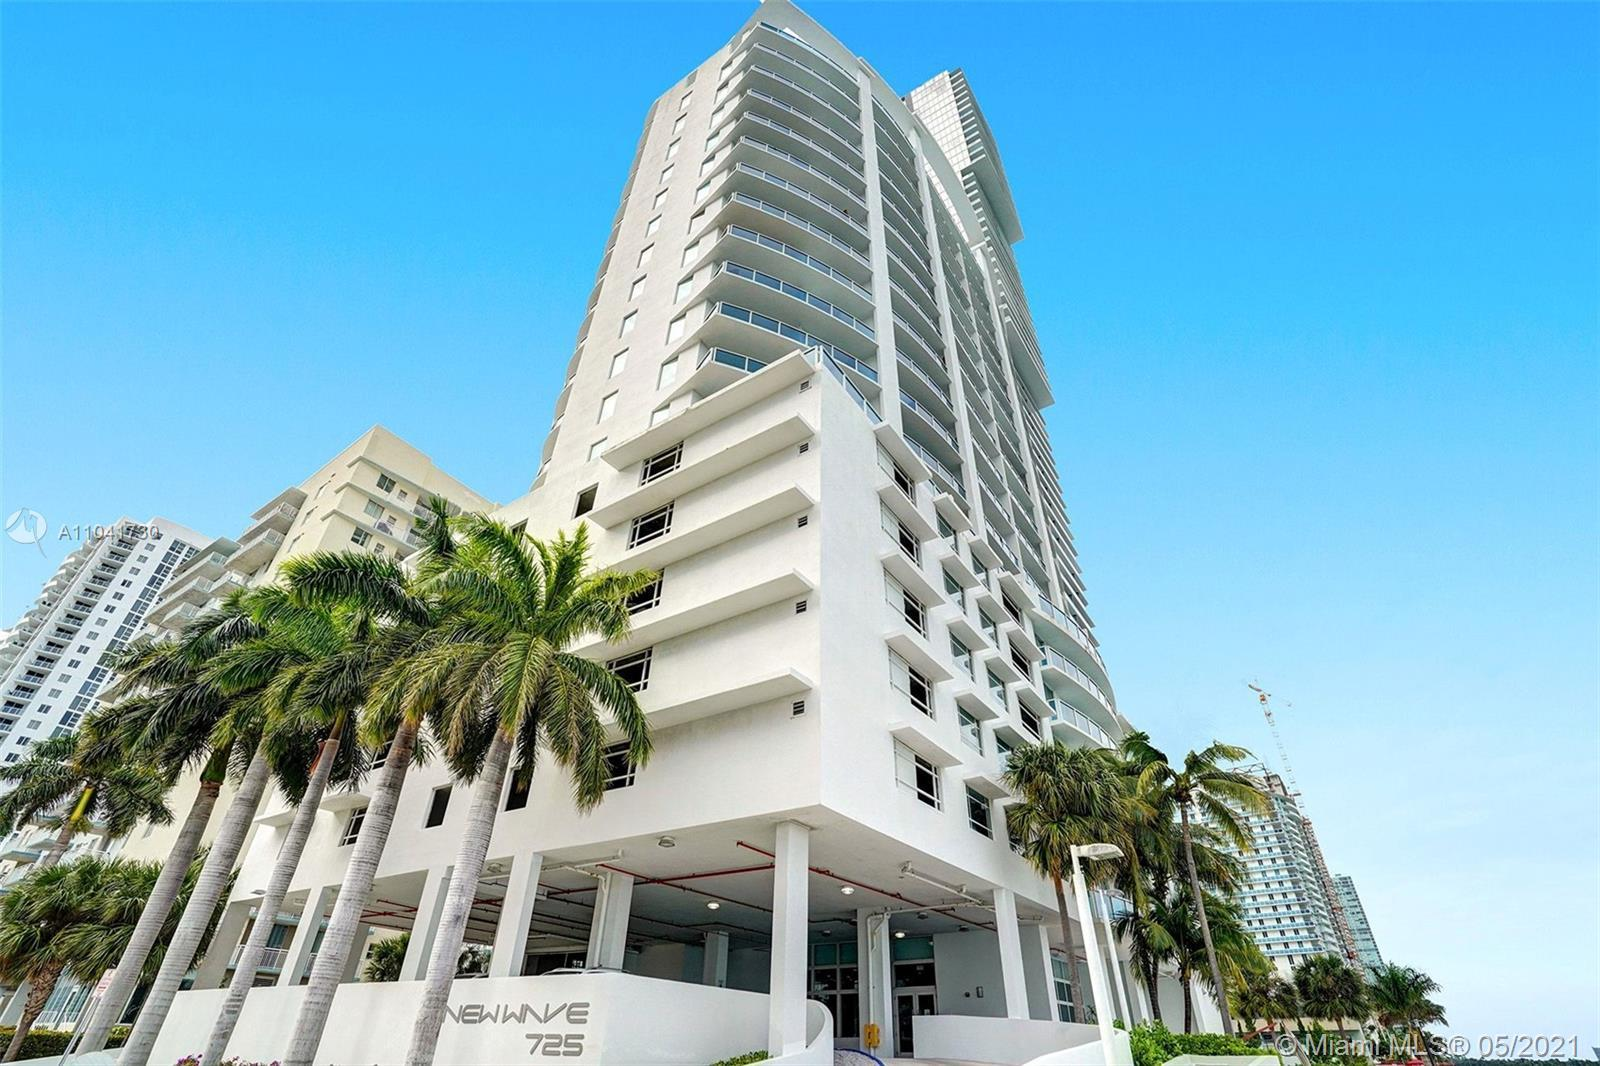 Luxury Waterfront Boutique Condo located in Edgewater. Spectacular Direct and Unobstructed Views of